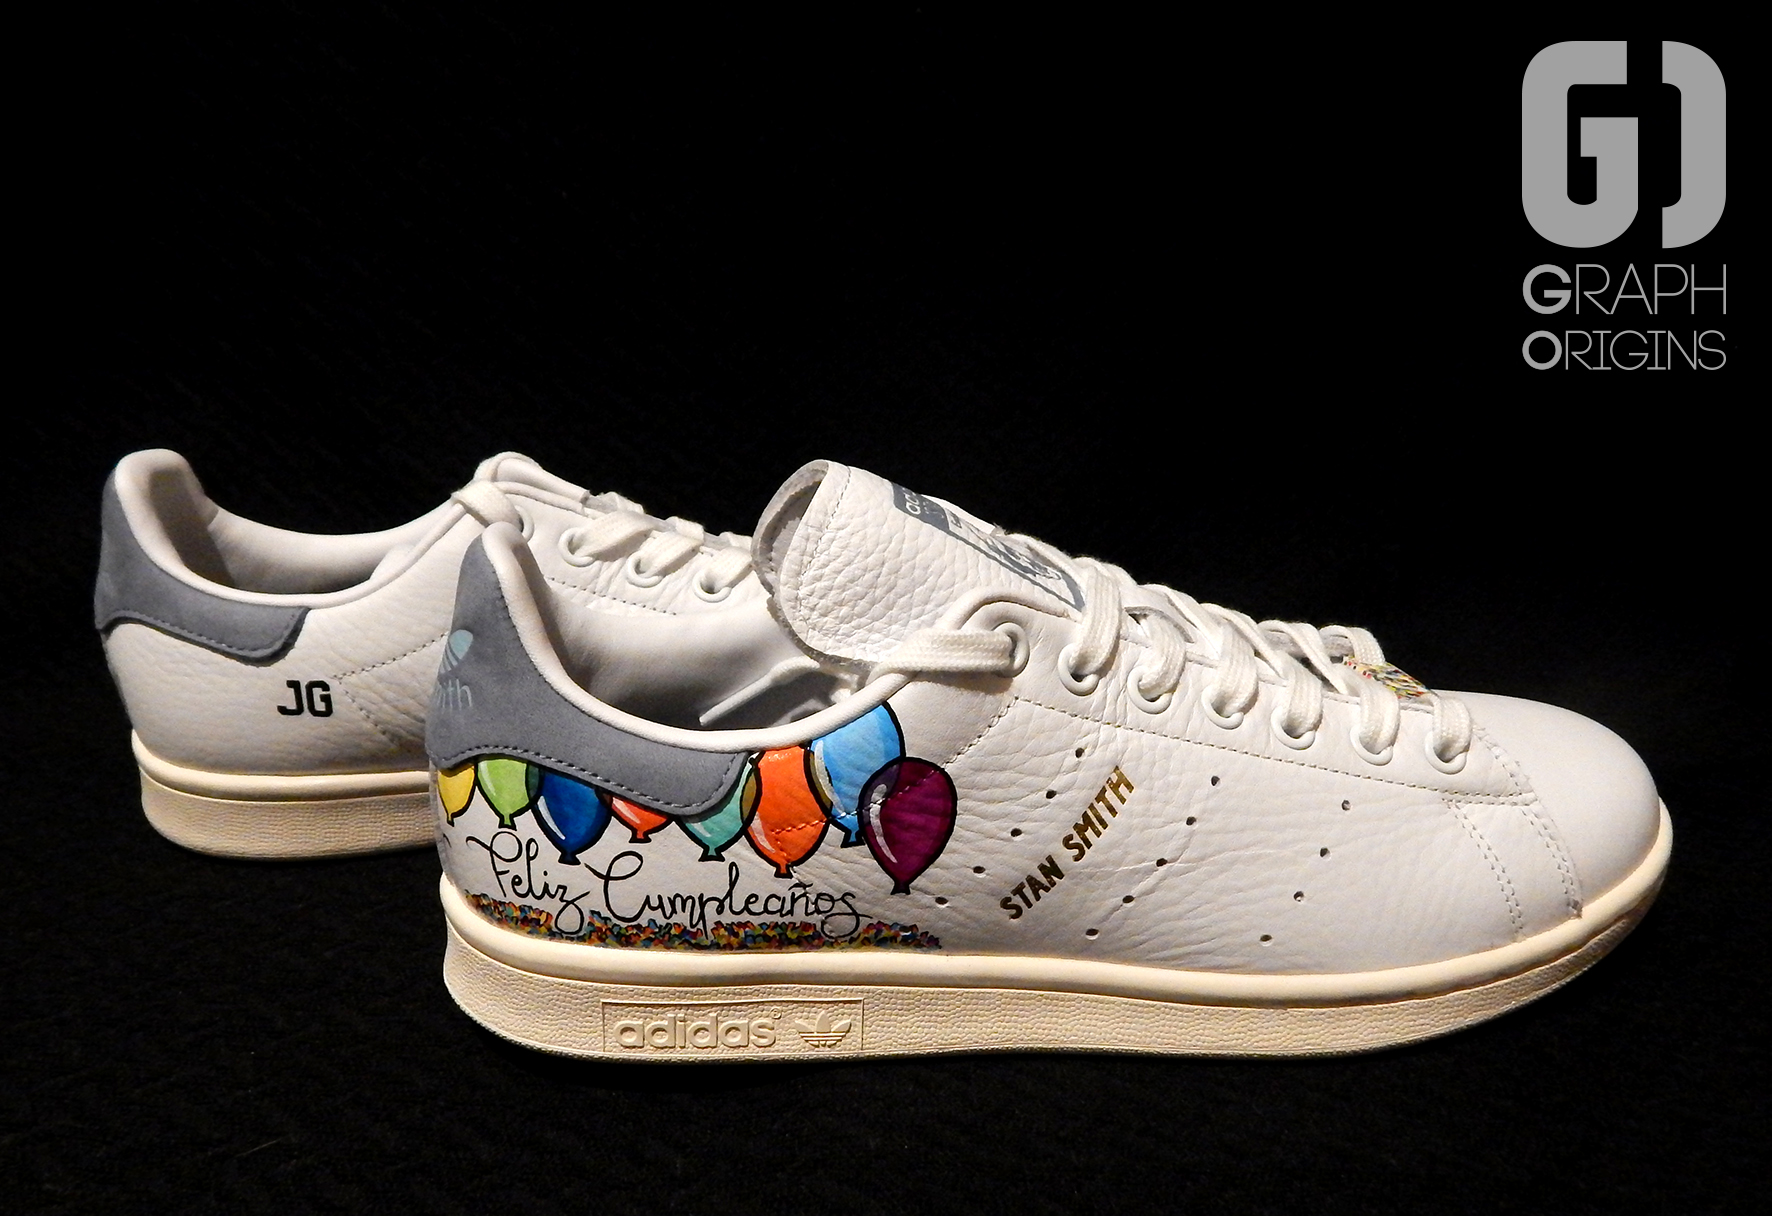 Custom baskets adidas Stan Smith Feliz Cumple graph origins 2